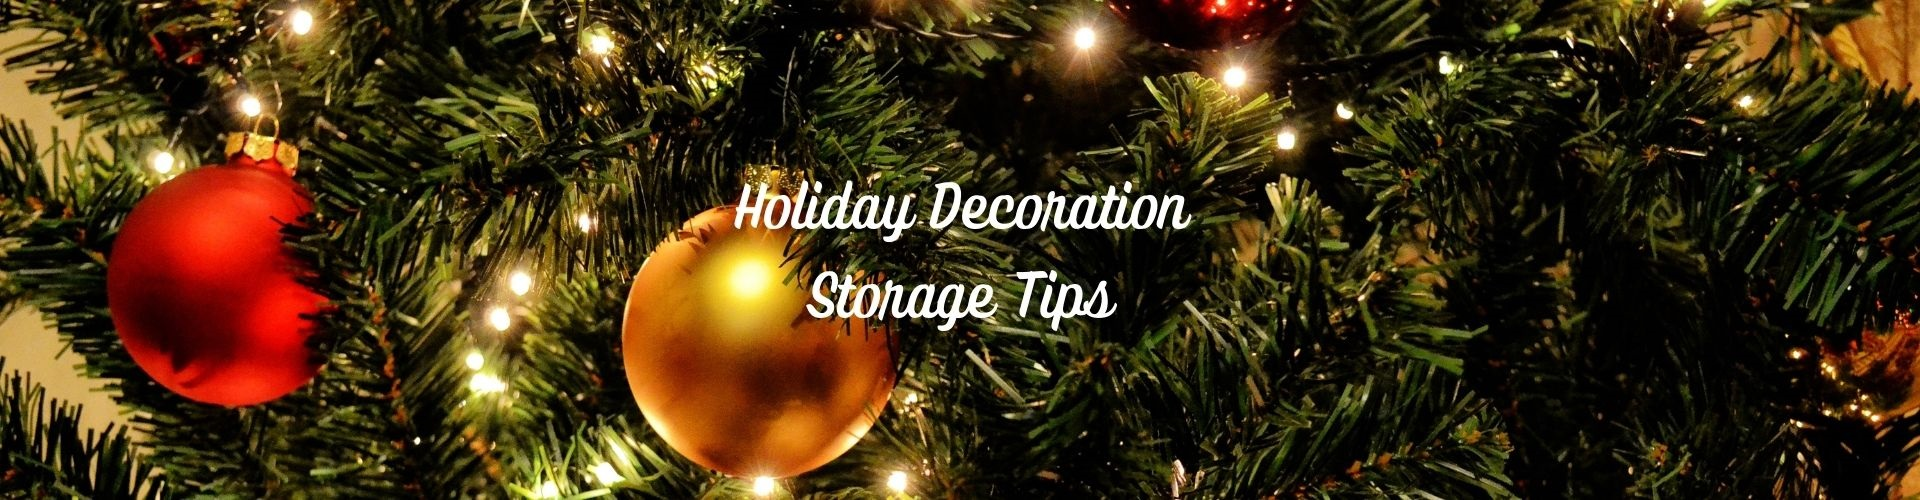 Holiday Decoration Storage